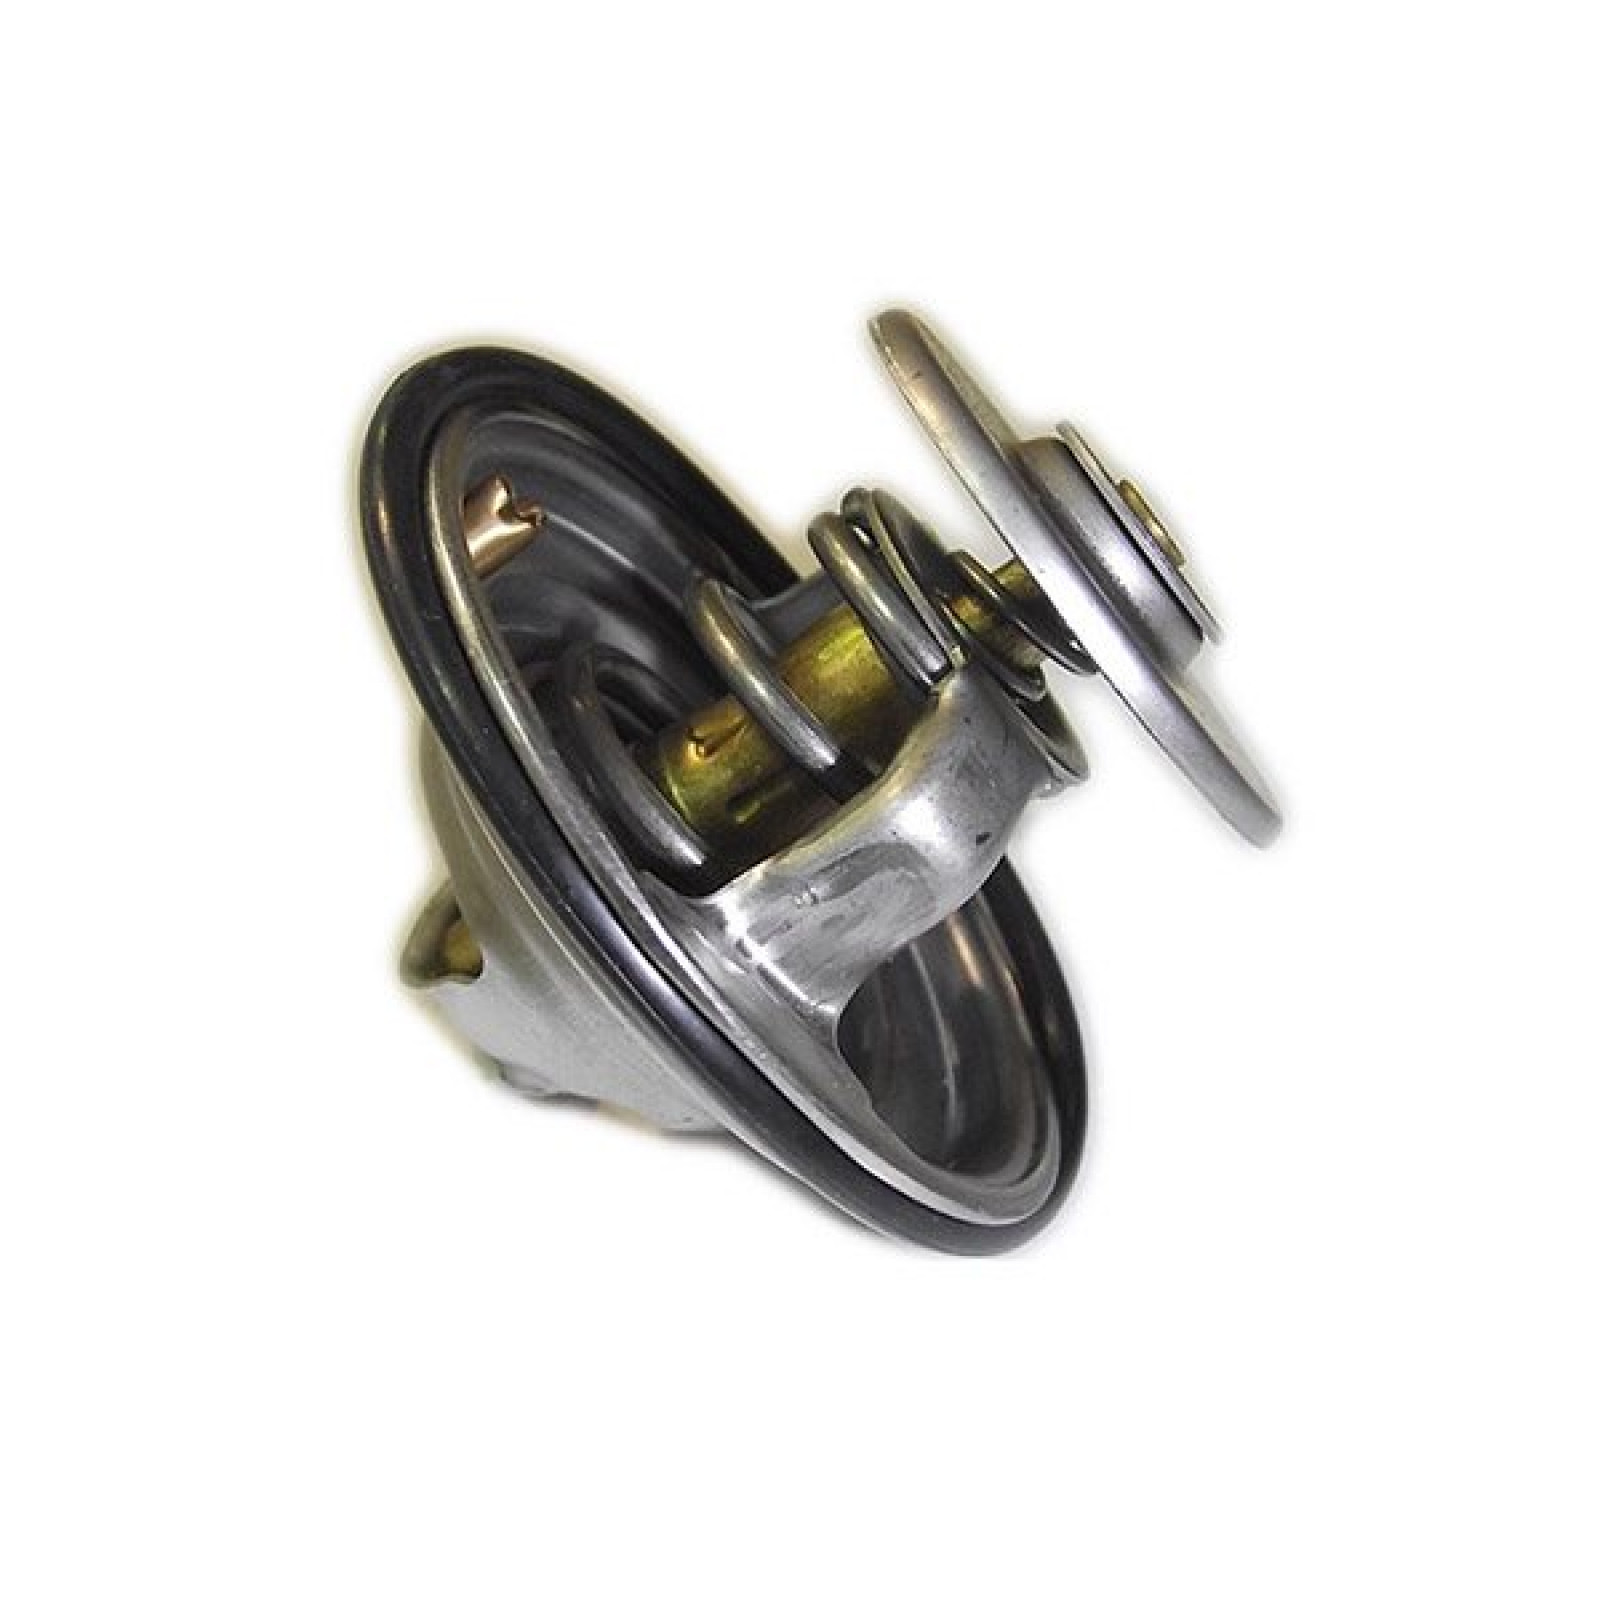 Mercedes benz stainless steel cooling system 87deg for Mercedes benz thermostat